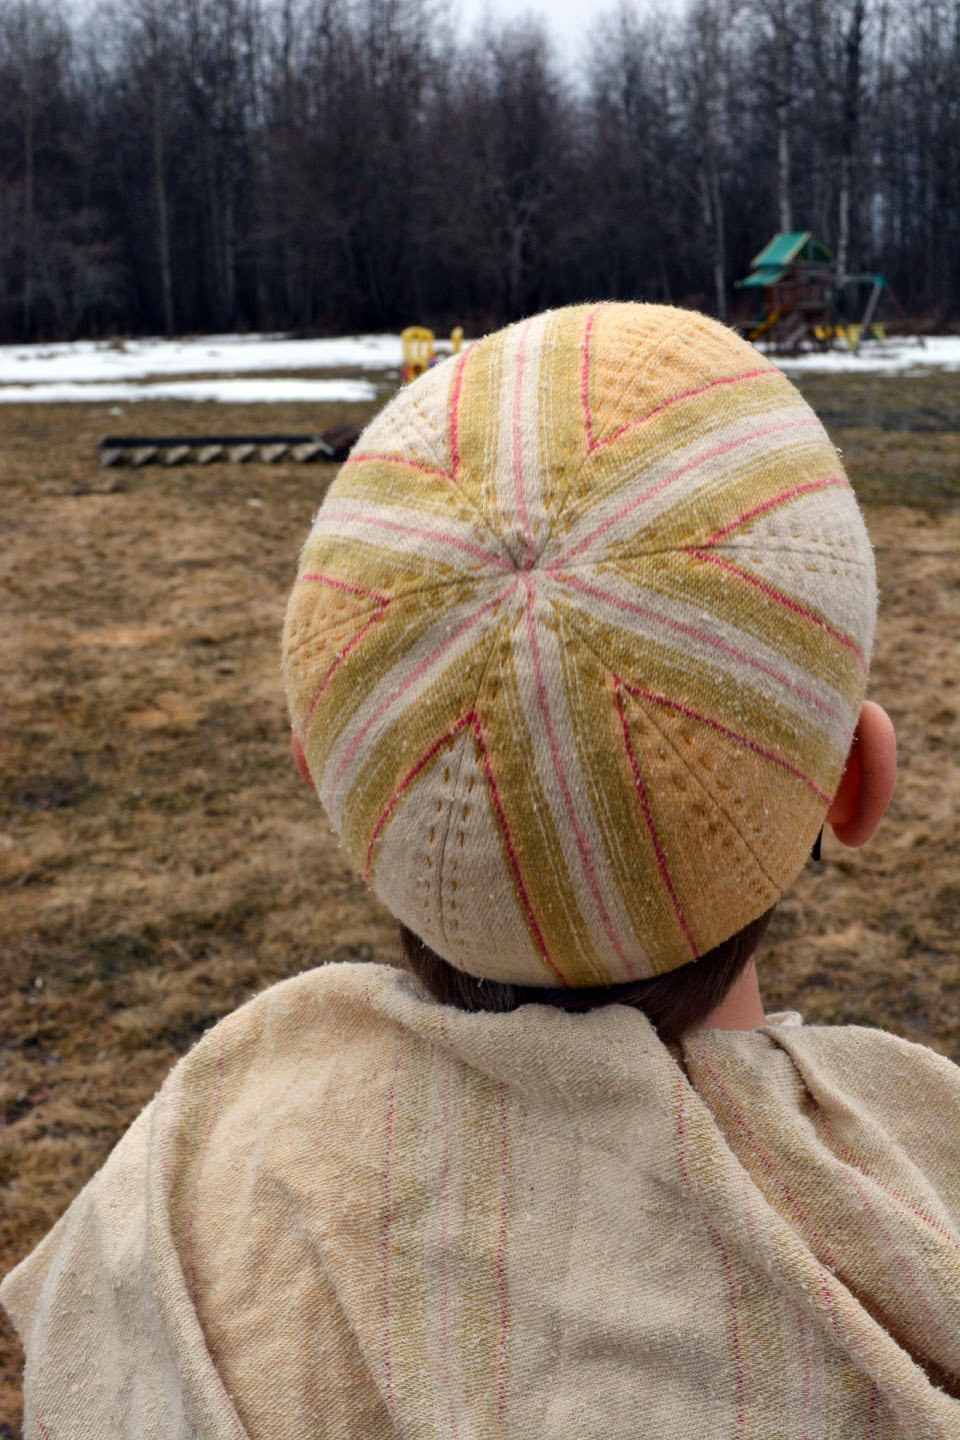 Top of the Kippah